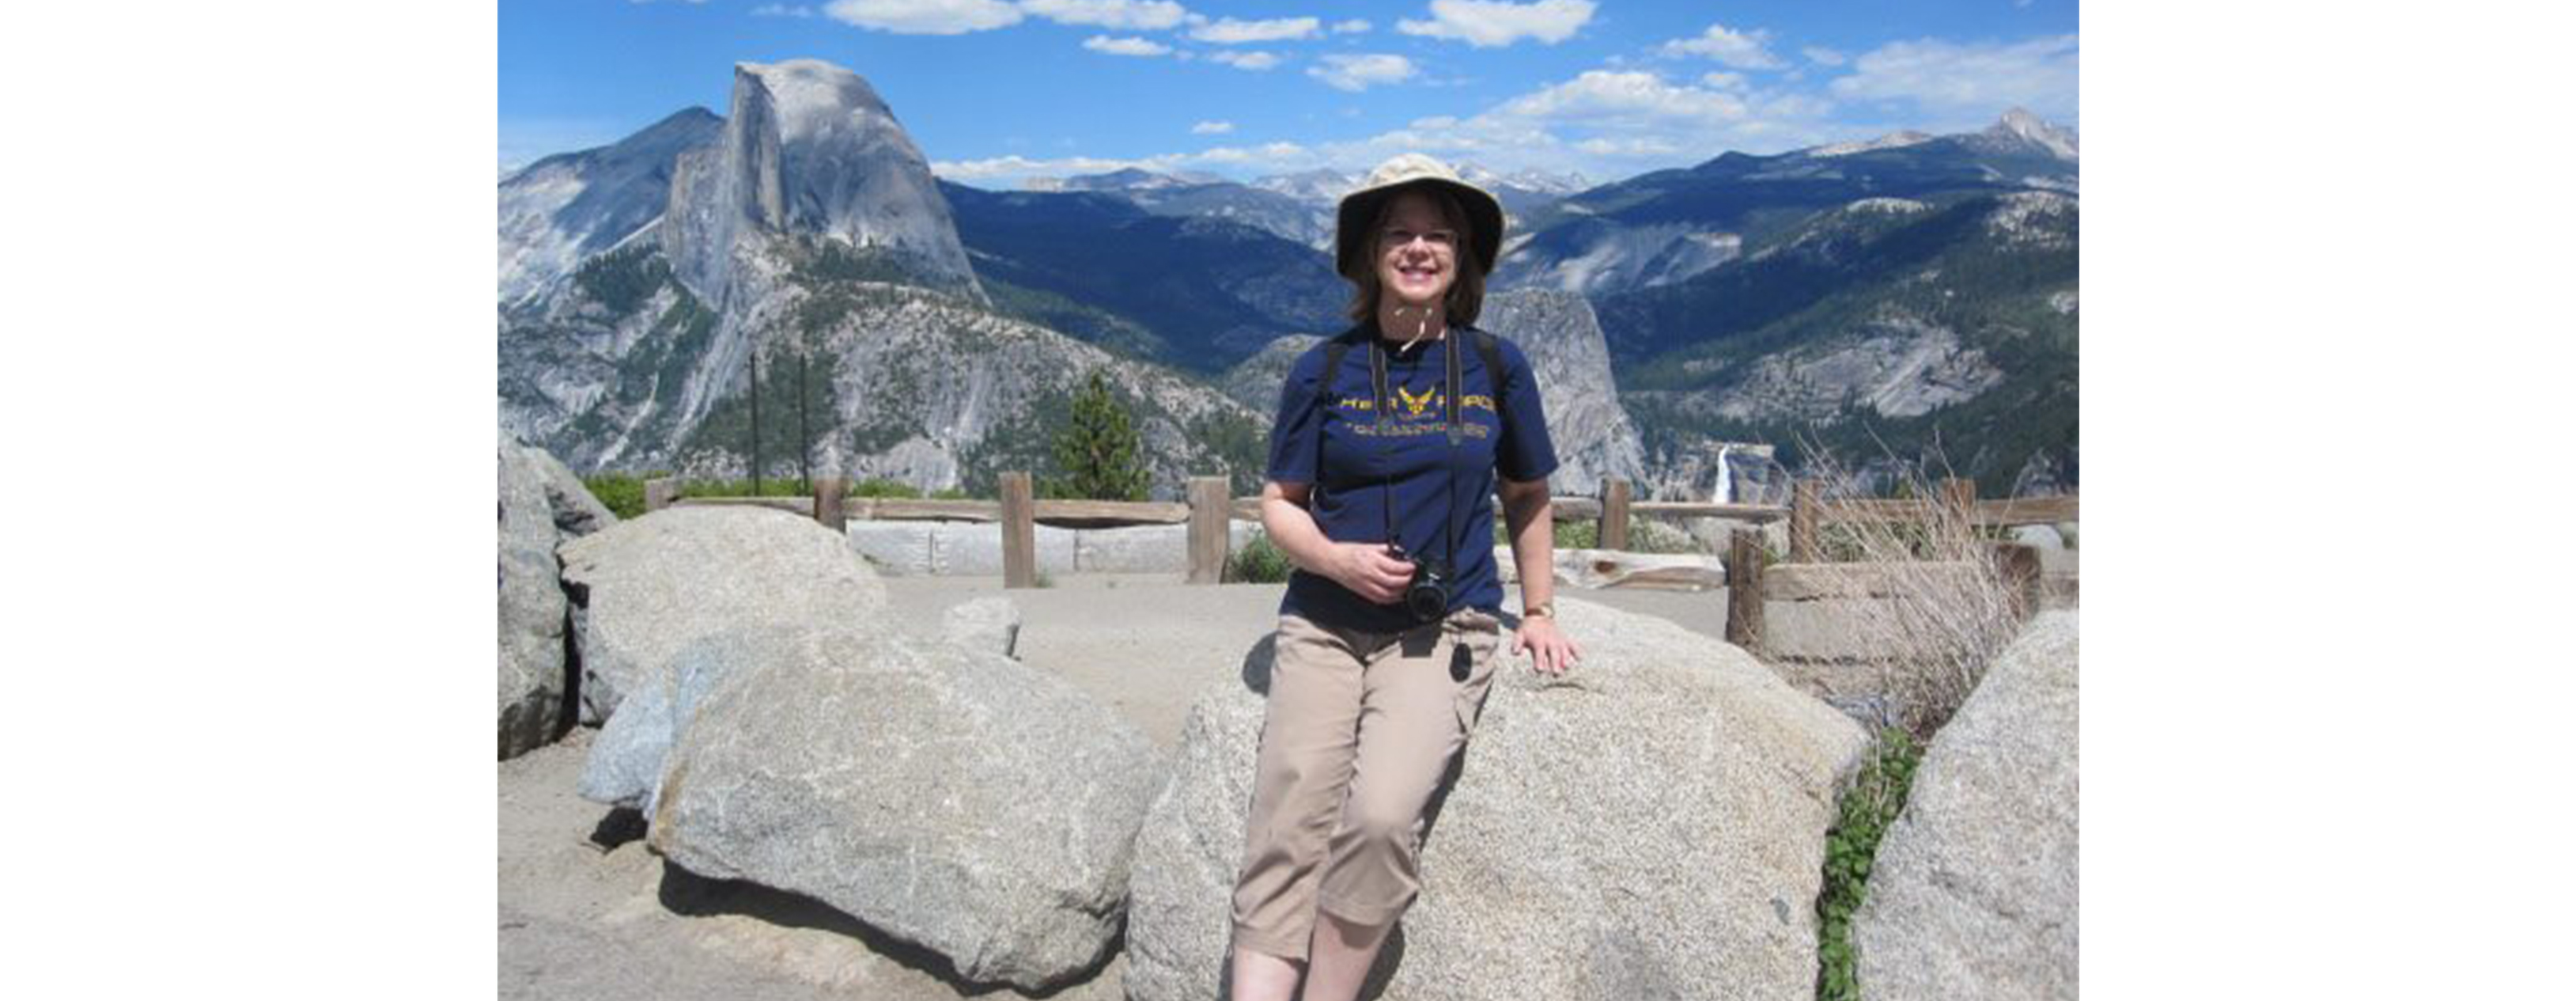 Judge Susan Kelseyis hiking in the mountains on a beautiful sunny day